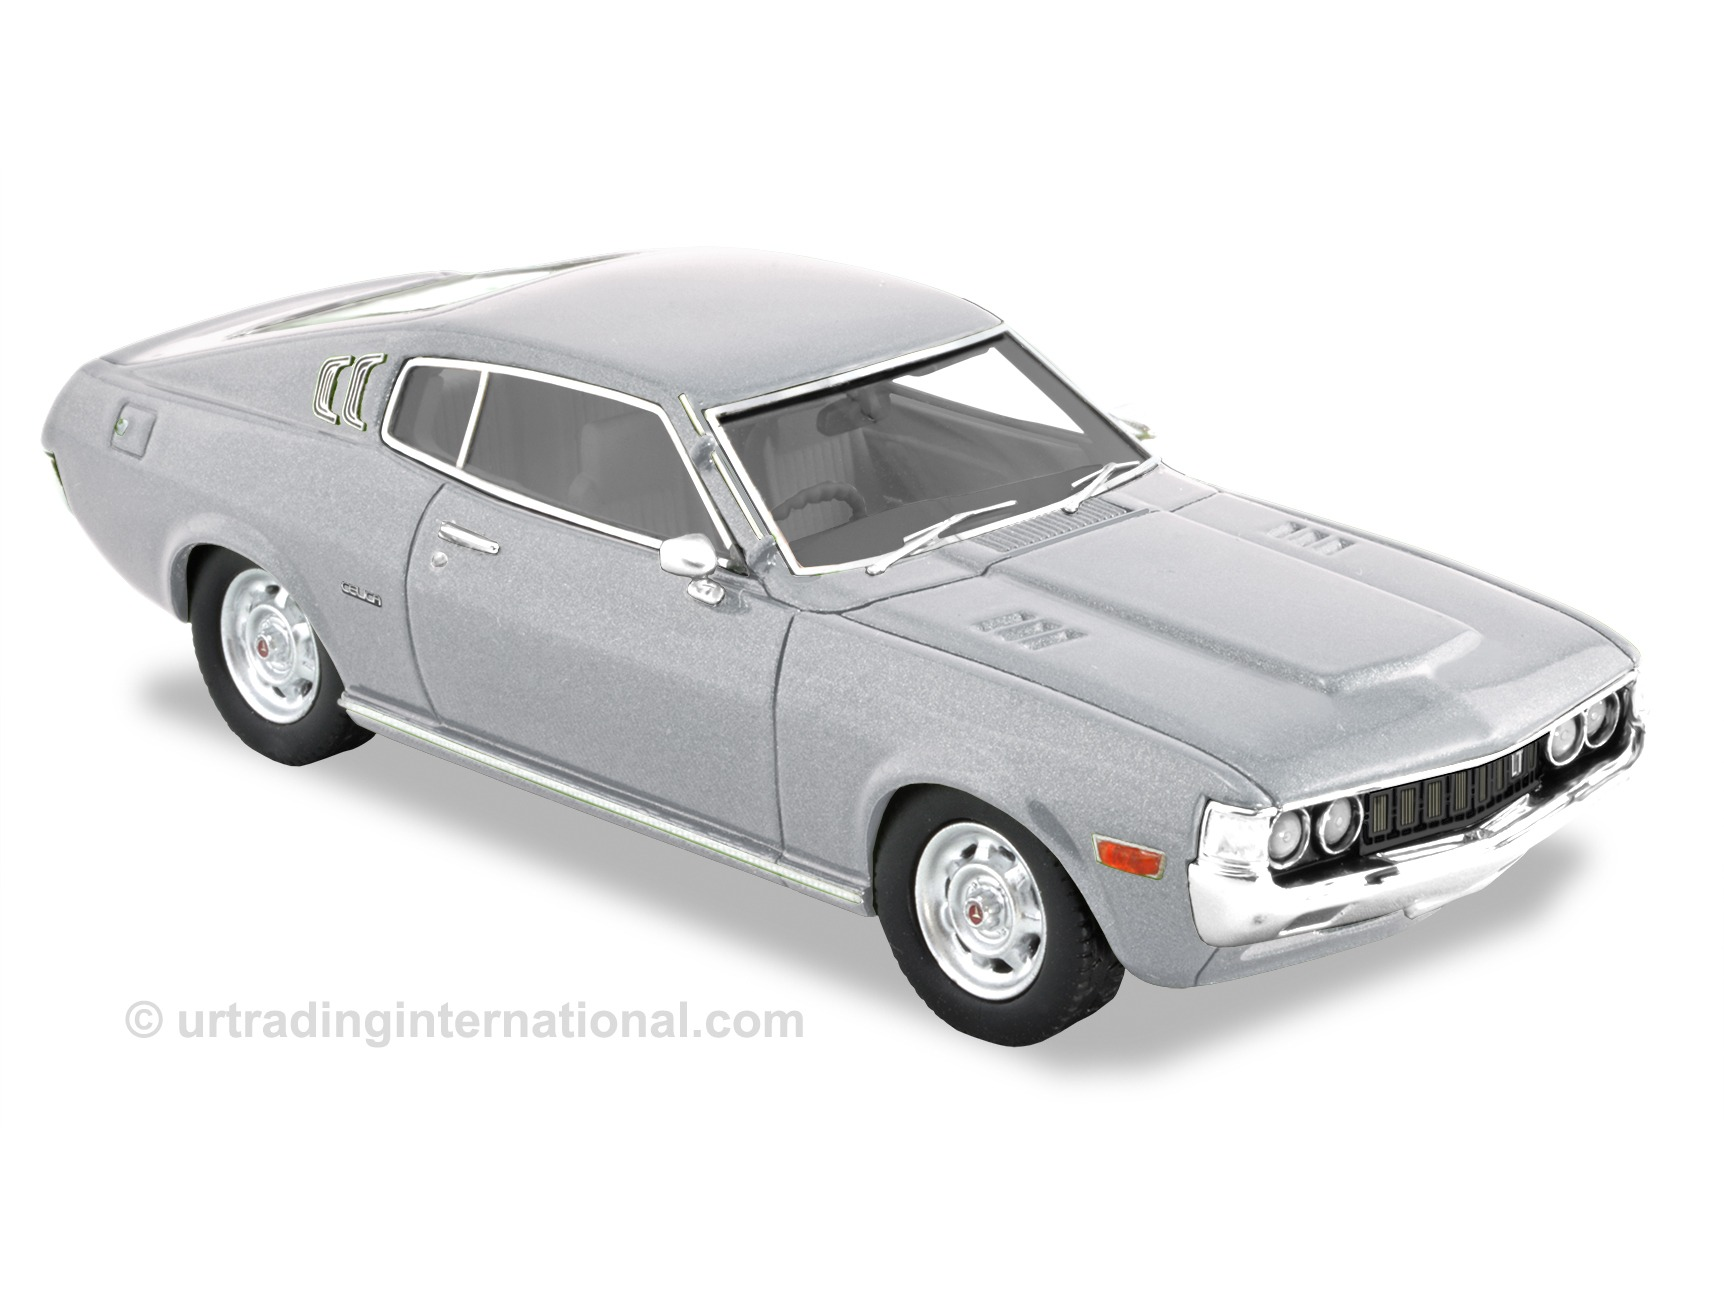 TRR81C 1977 Toyota Celica LT2000 – Silver